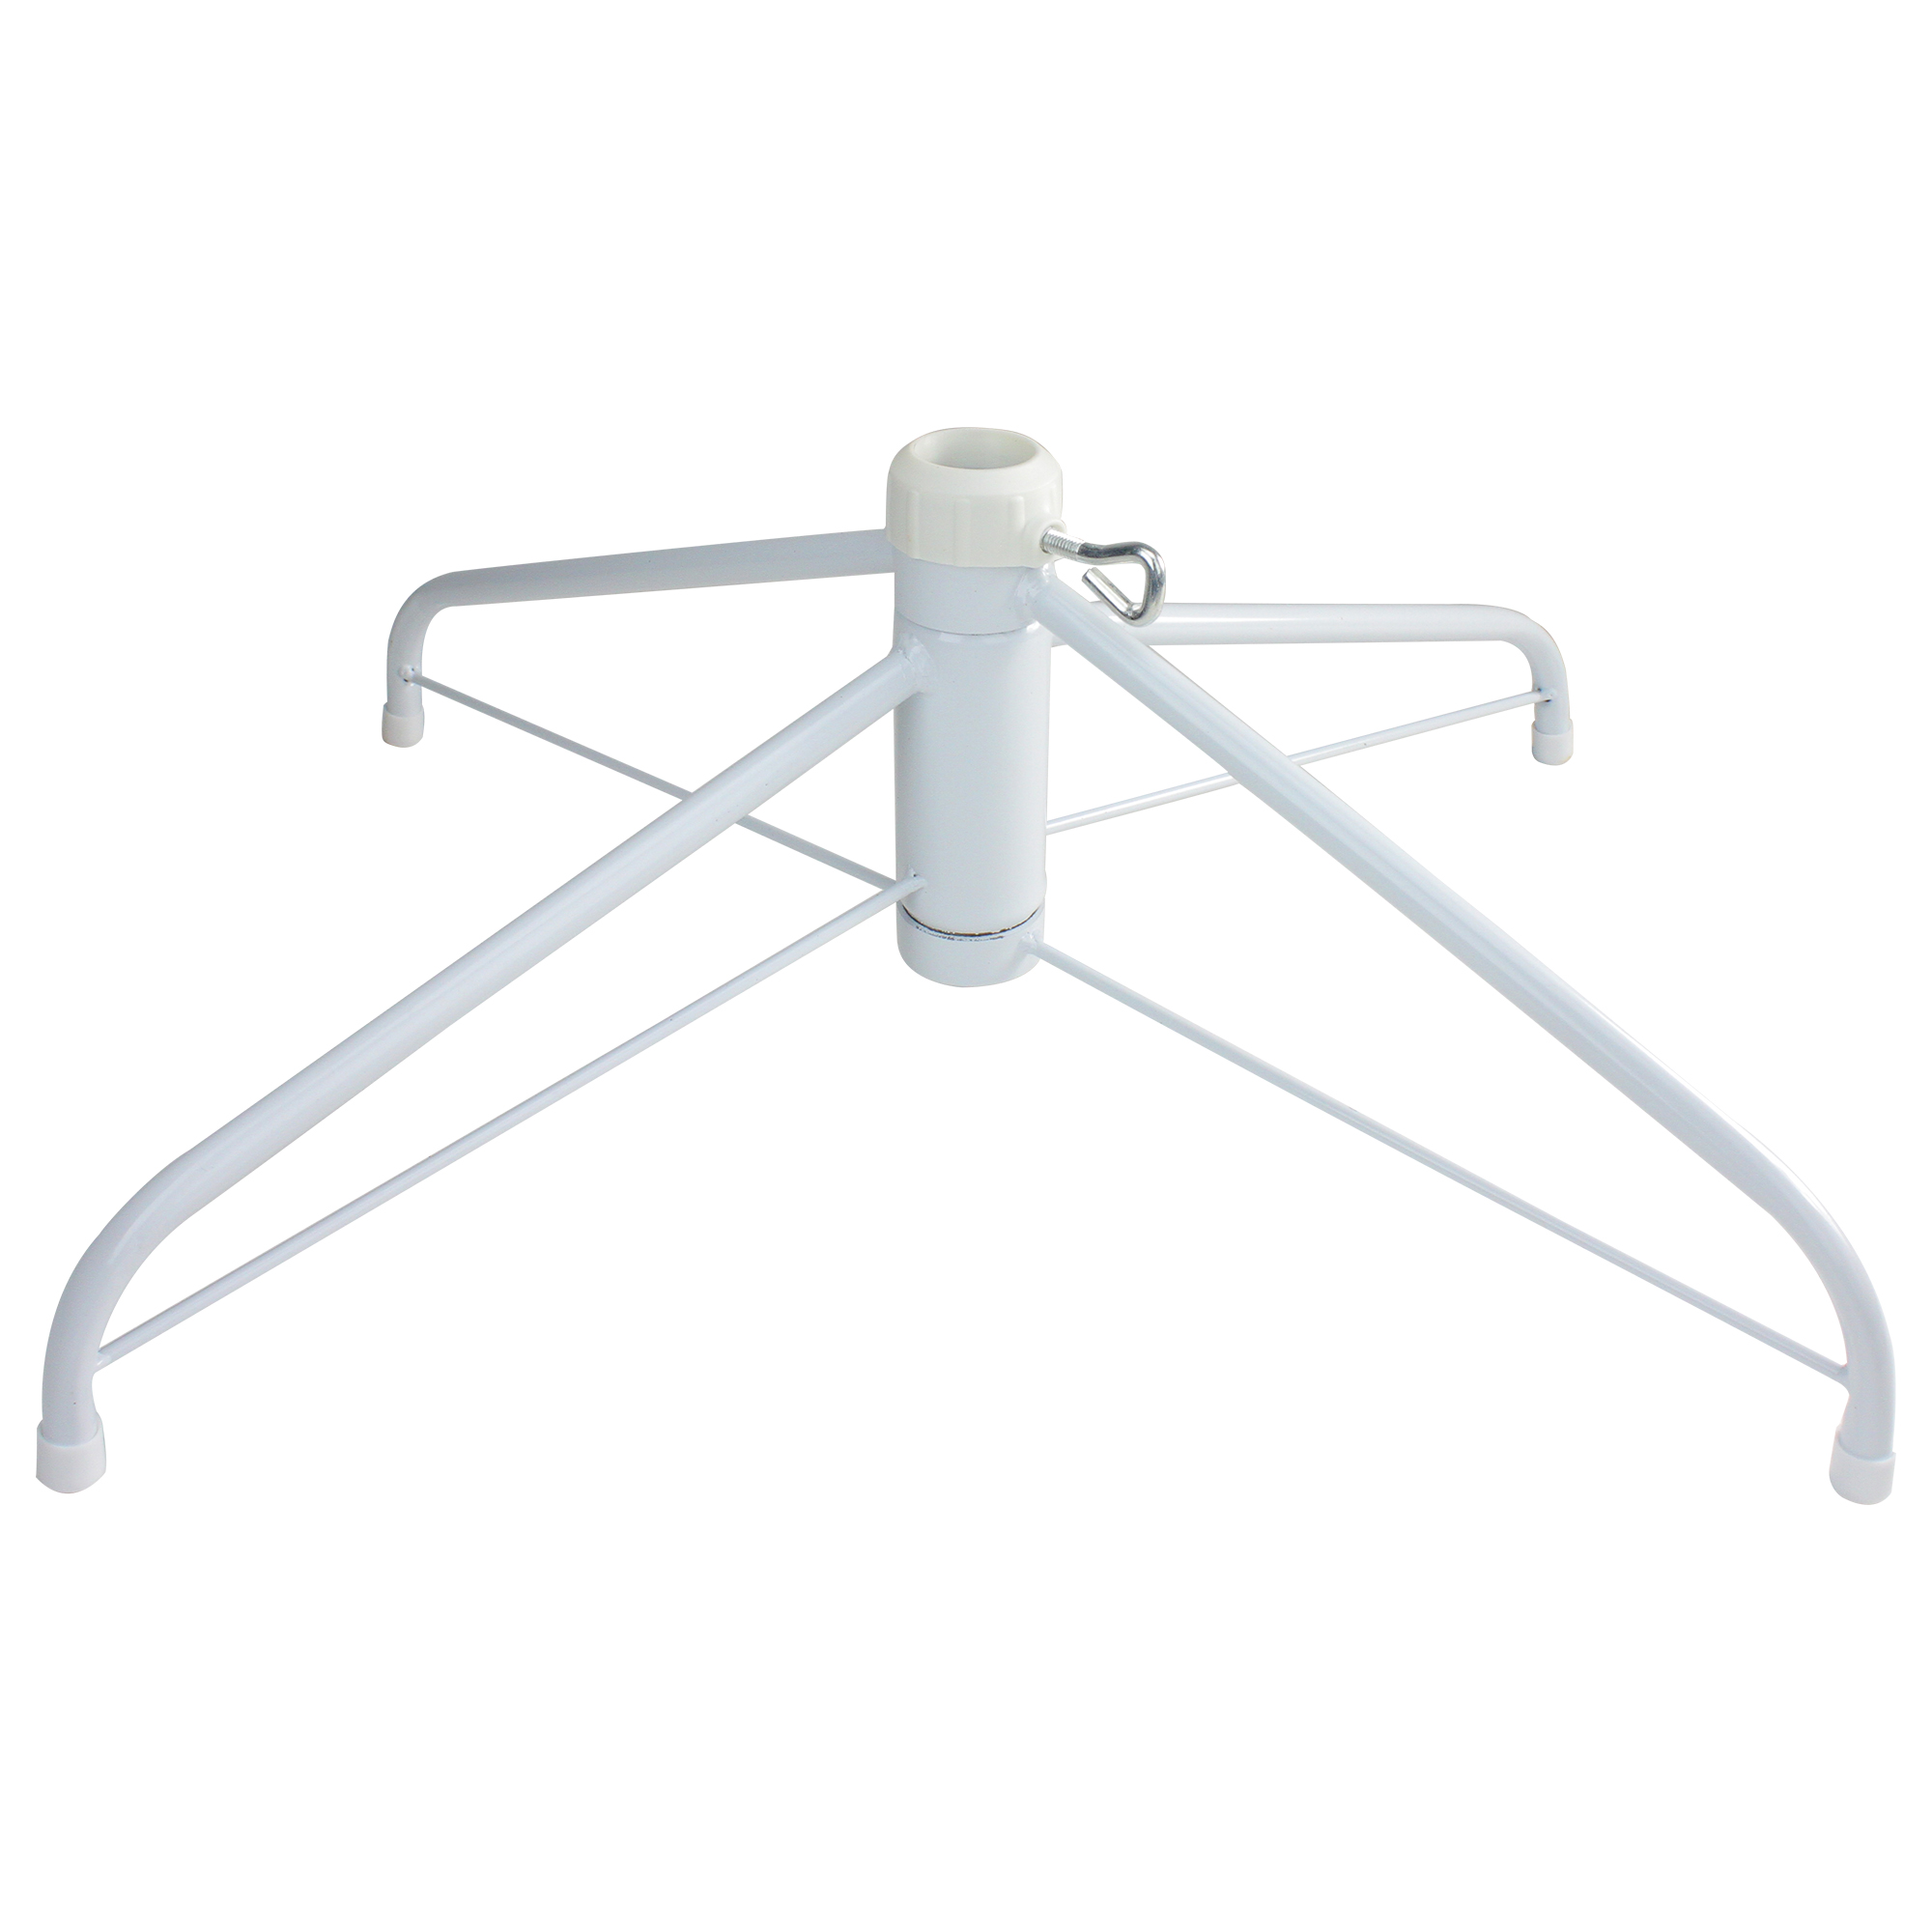 Artificial Christmas Tree Stand.Details About Northlight White Metal Christmas Tree Stand For 6 5 7 5 Artificial Trees